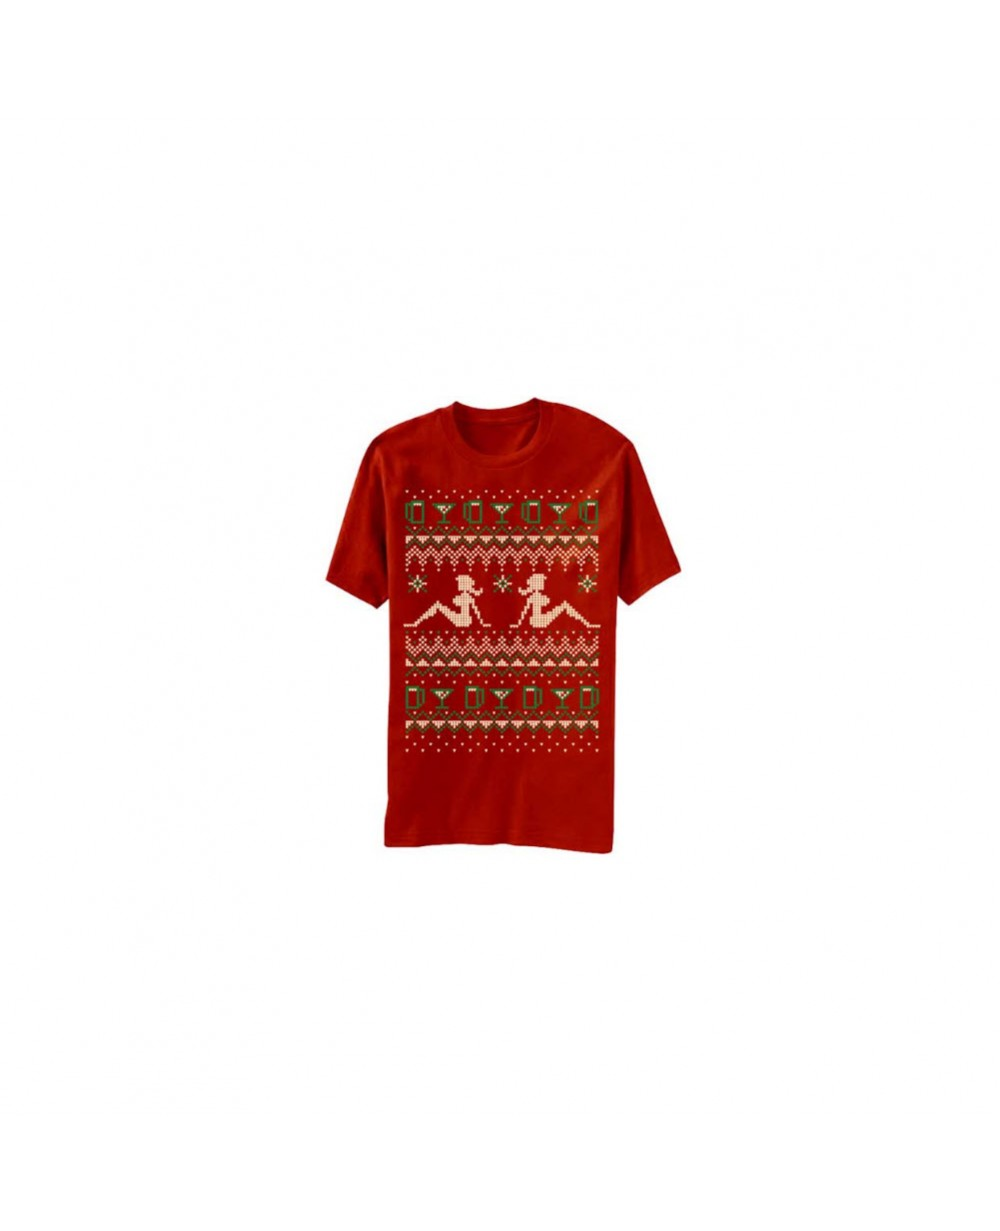 More Views. Sexy Girls Ugly Christmas Sweater T-Shirt